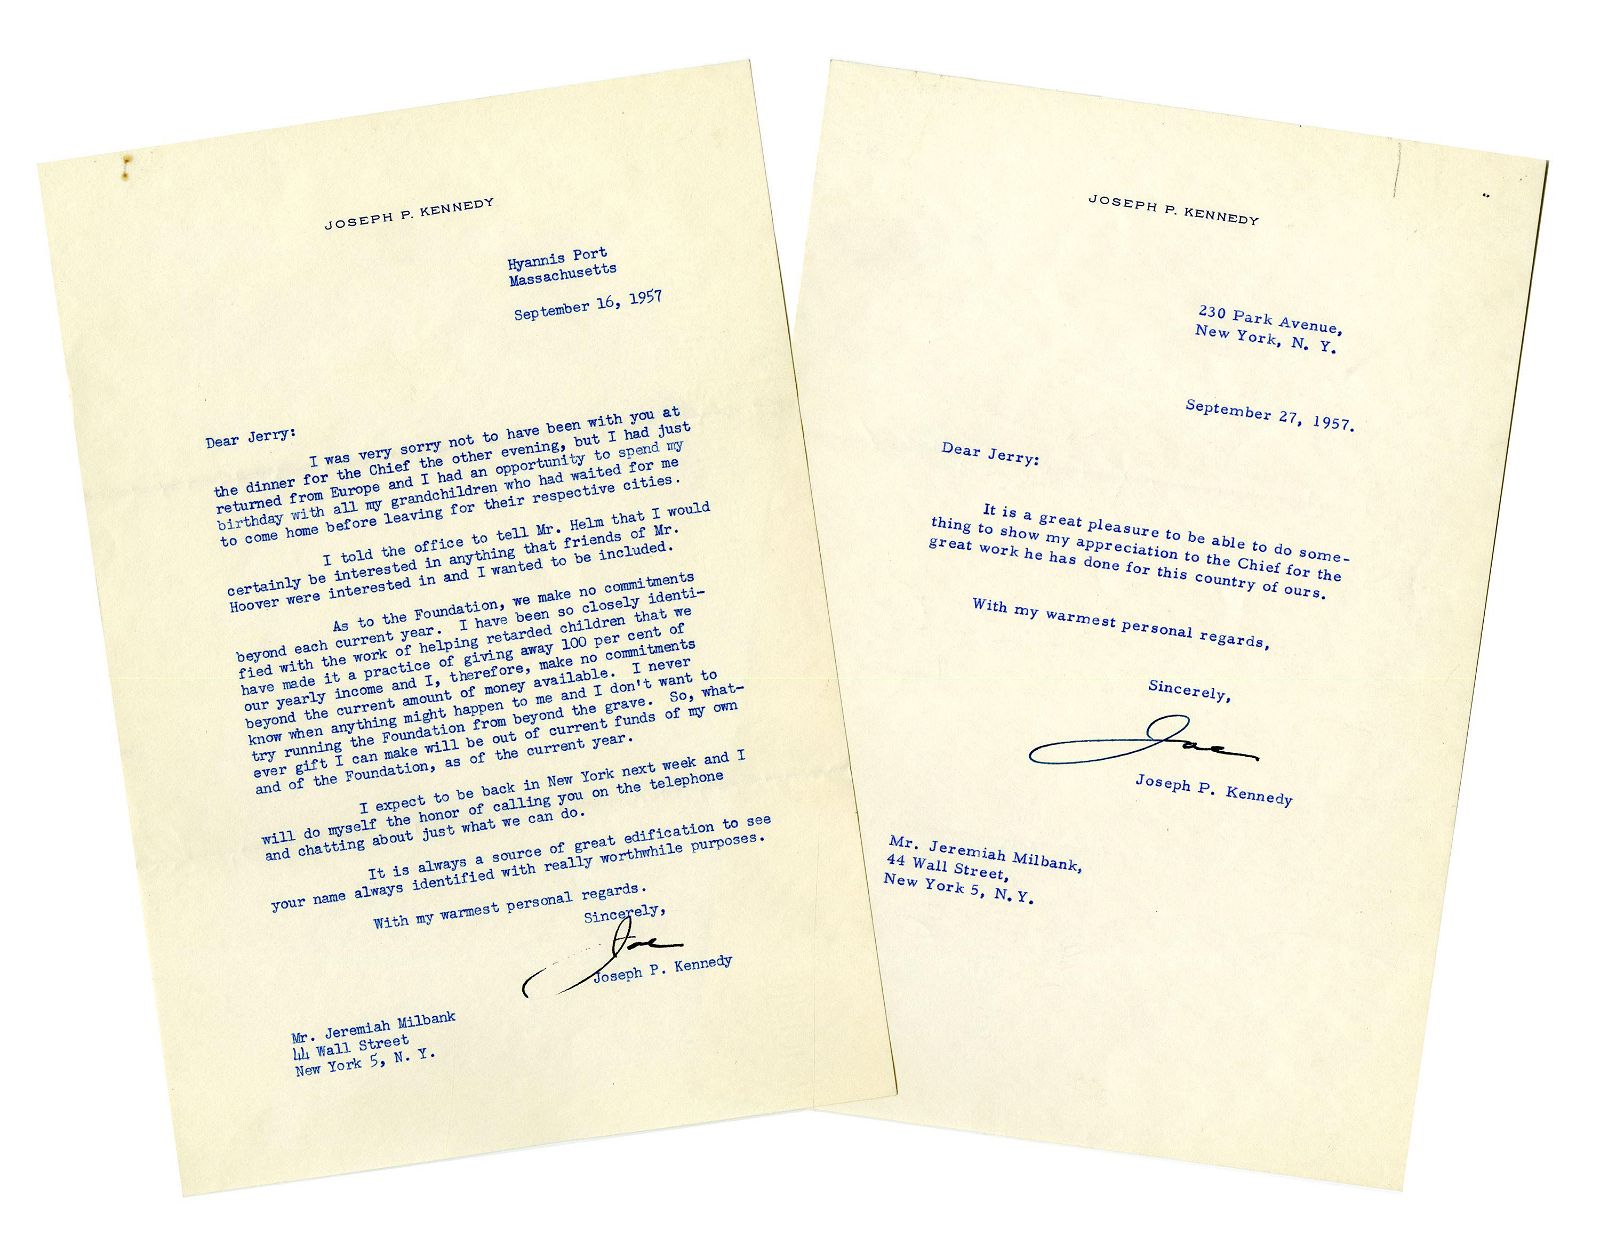 Joseph P. Kennedy Two Typed Letters Signed Regarding